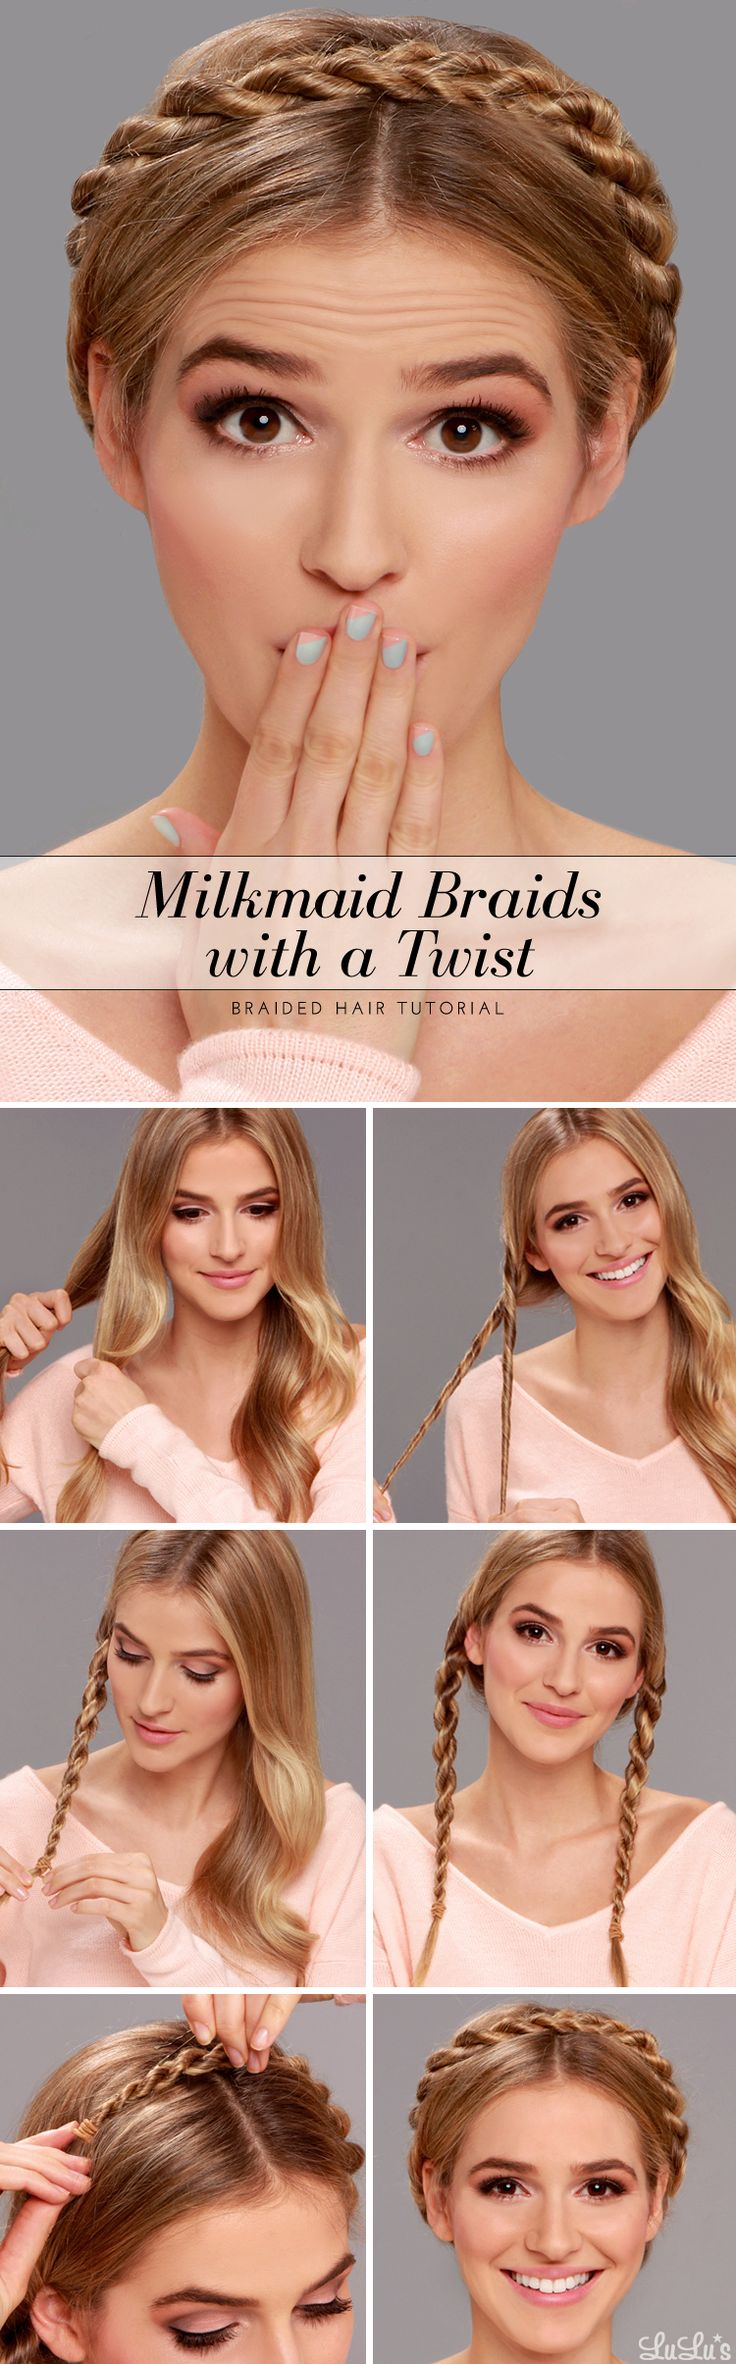 Milkmaid Braid with a Twist Hair Tutorial at LuLus.com!